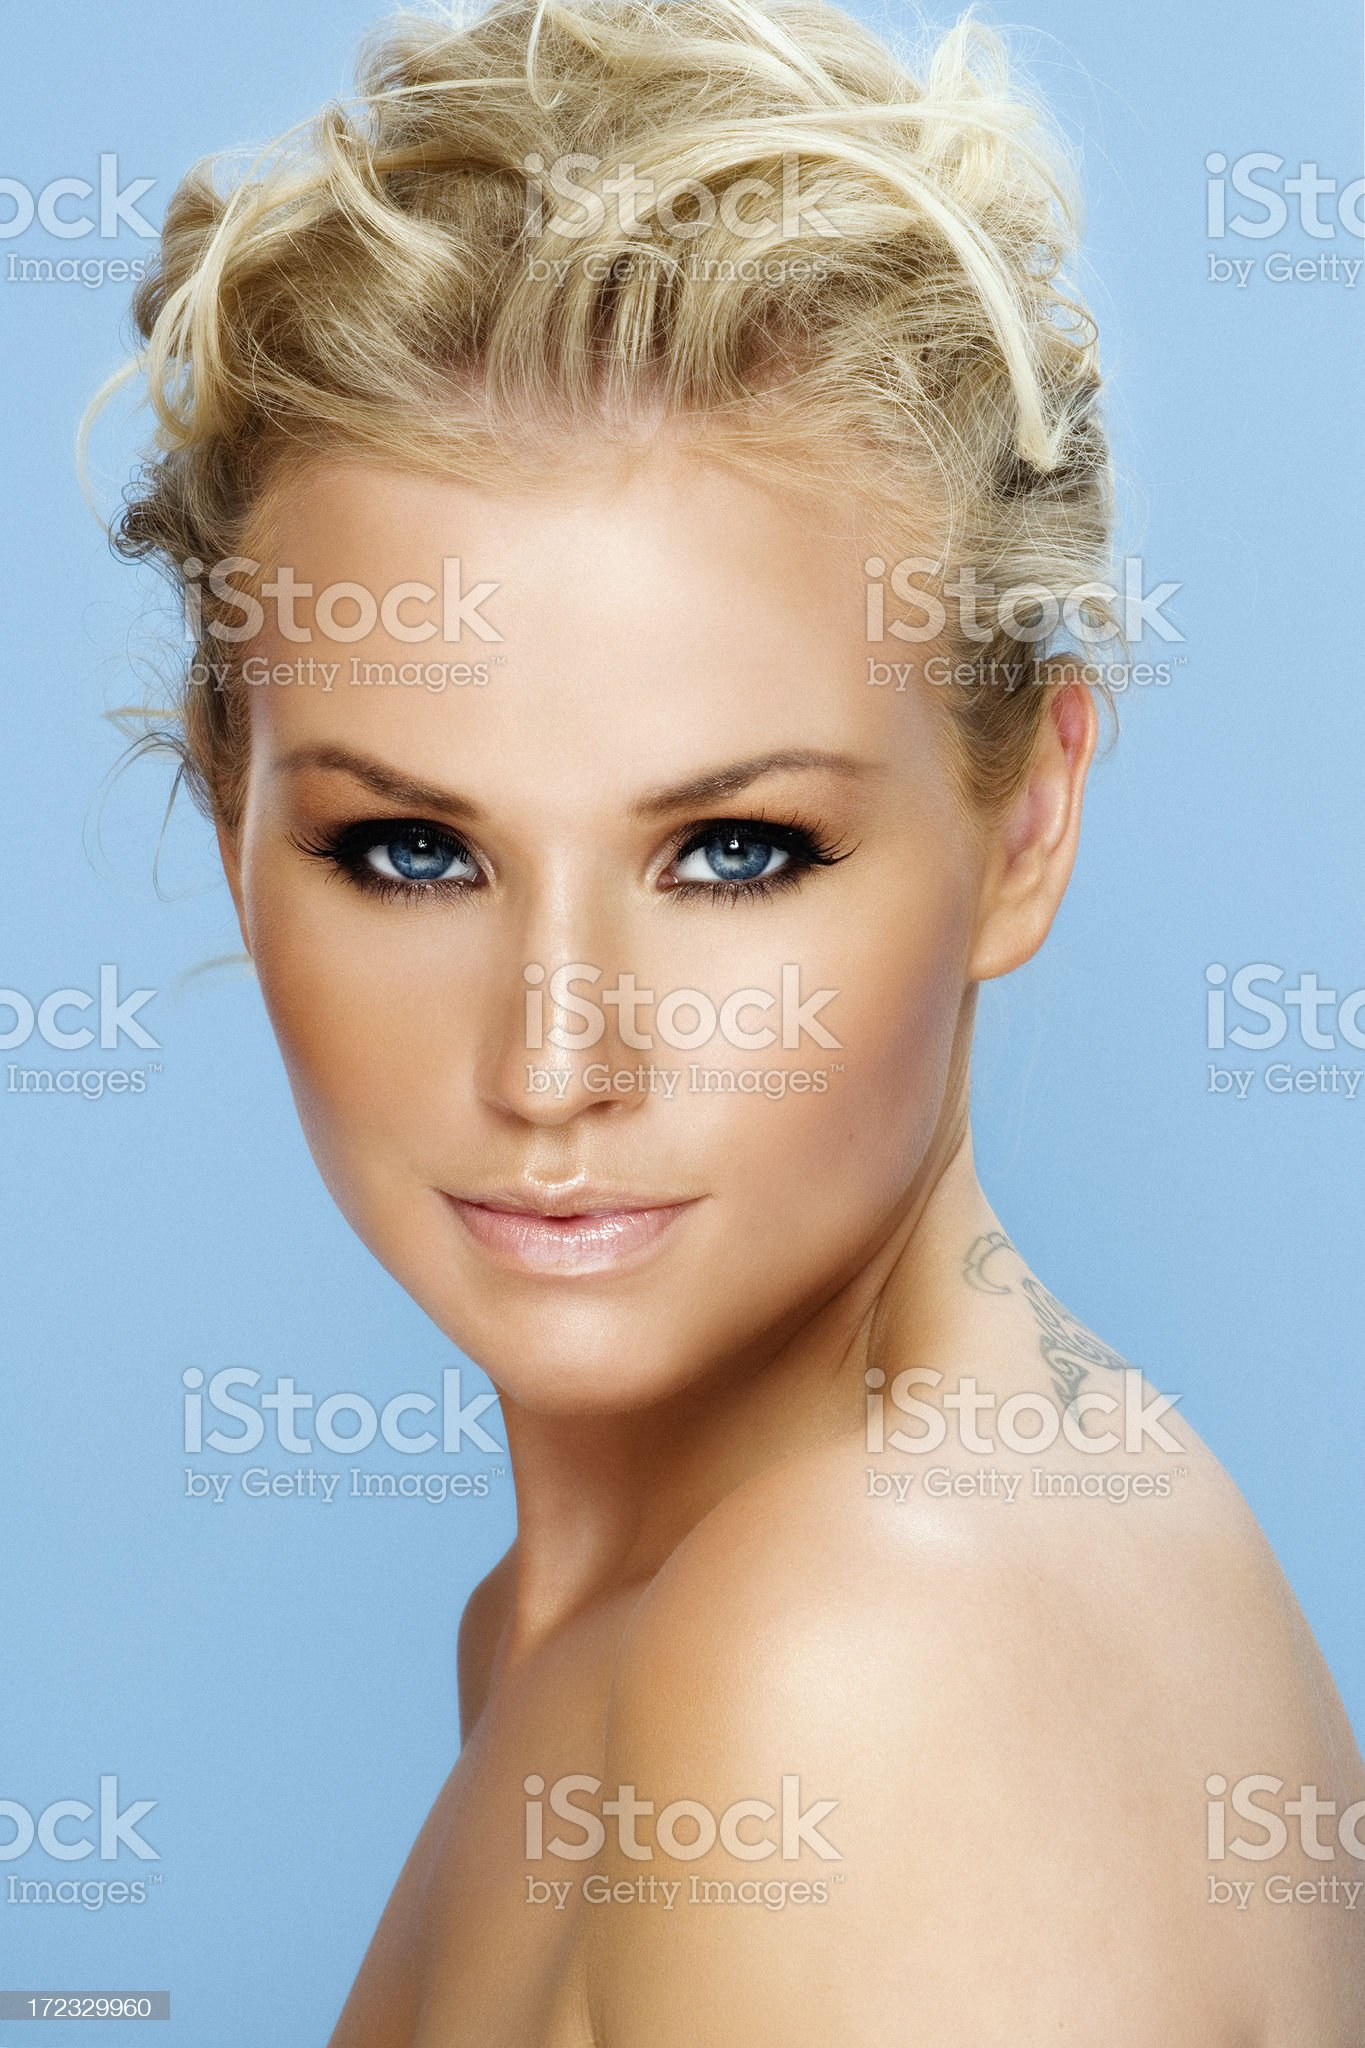 Tanned Beauty royalty-free stock photo